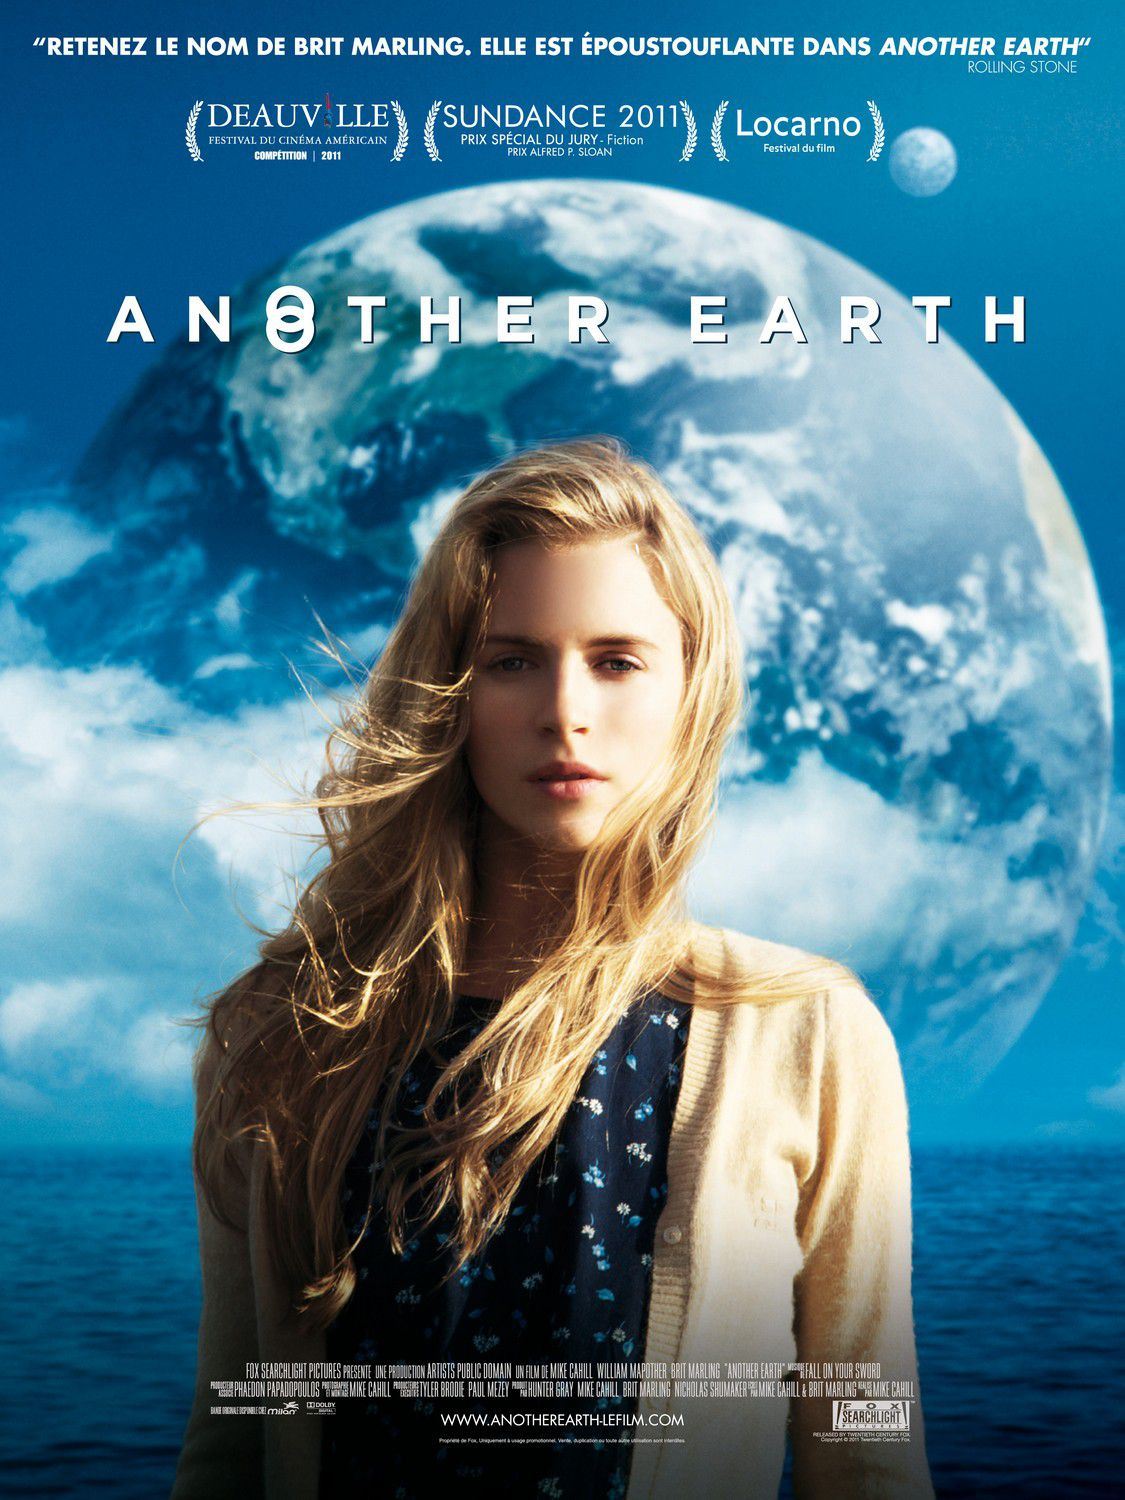 science fiction Another_Earth